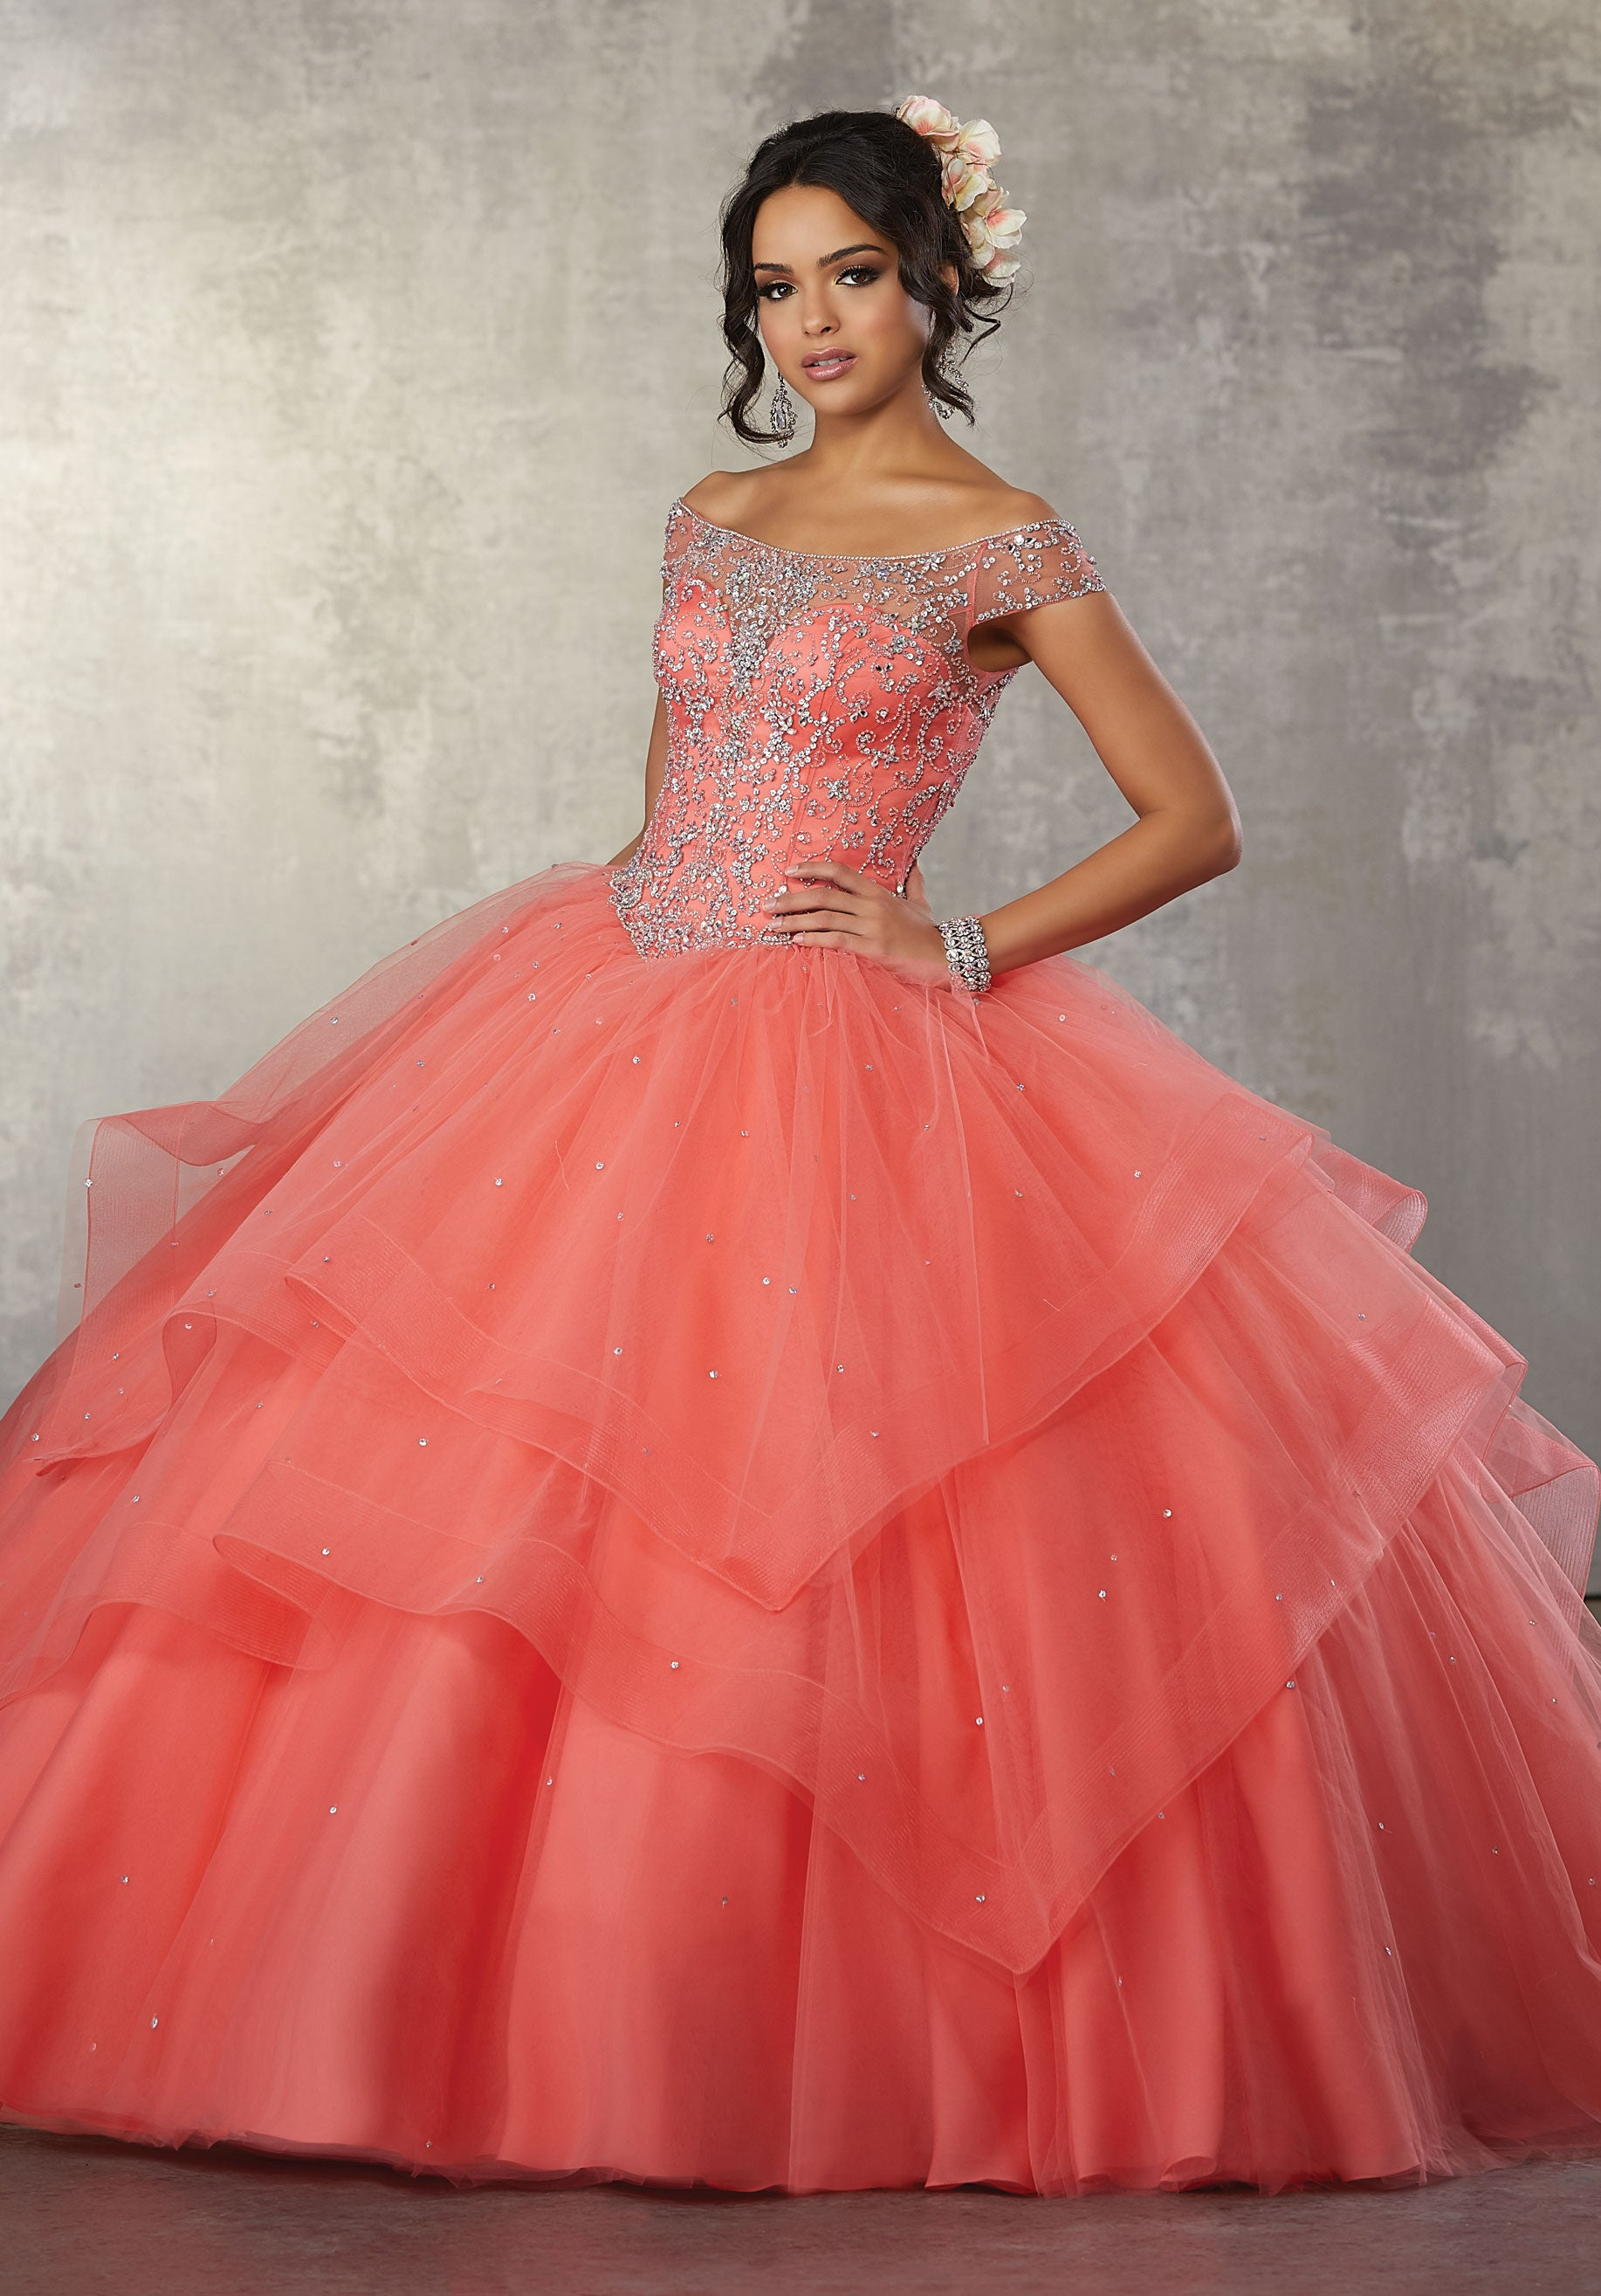 78061 Tulle Quinceañera Dress with a Beautiful Illusion Off the Shoulder Neckline